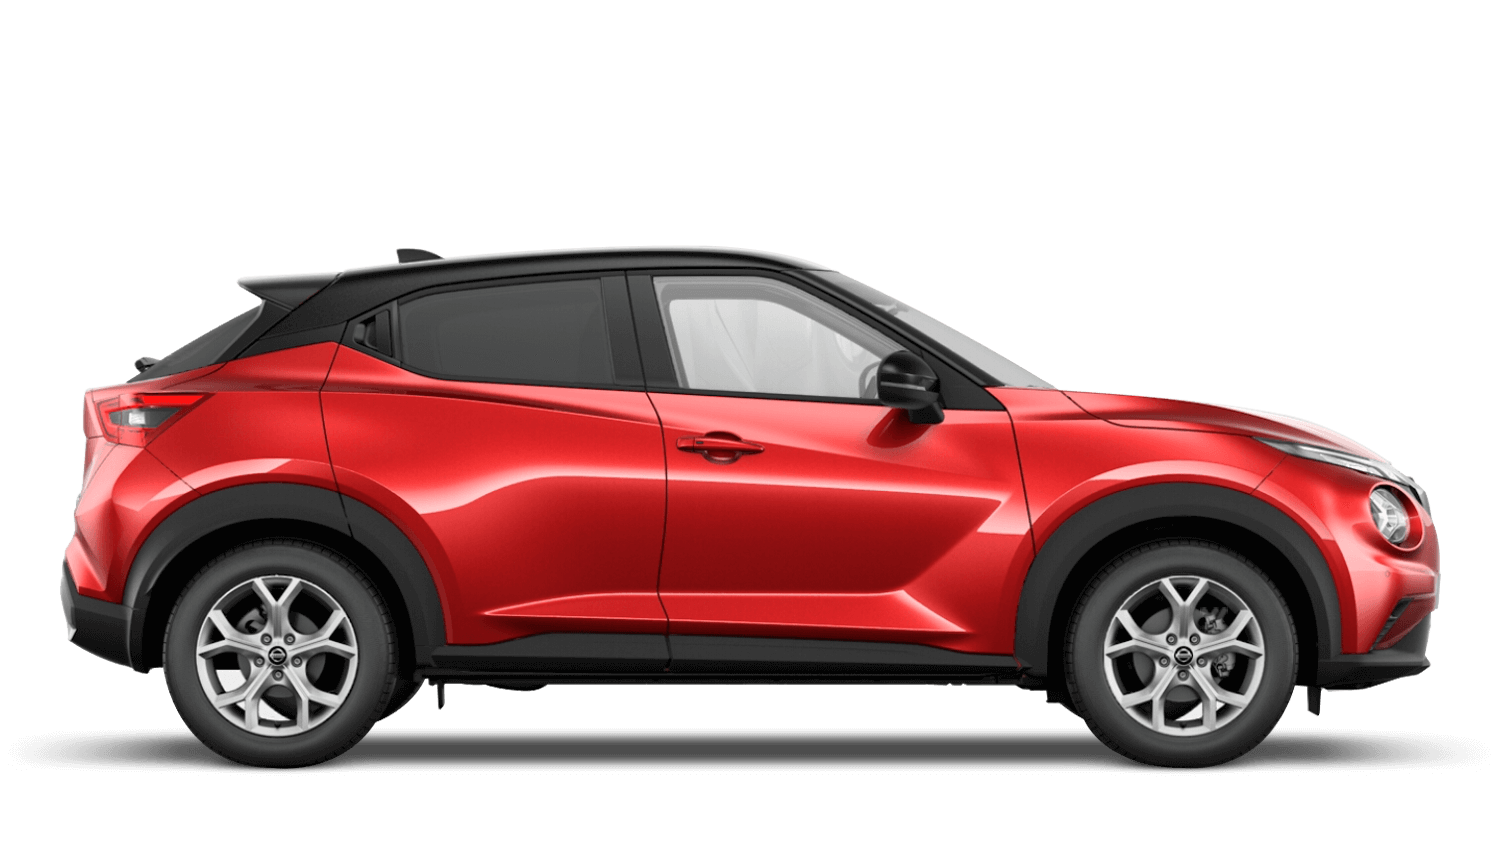 Fuji Sunset Red with Pearl Black Roof Next Generation Nissan Juke